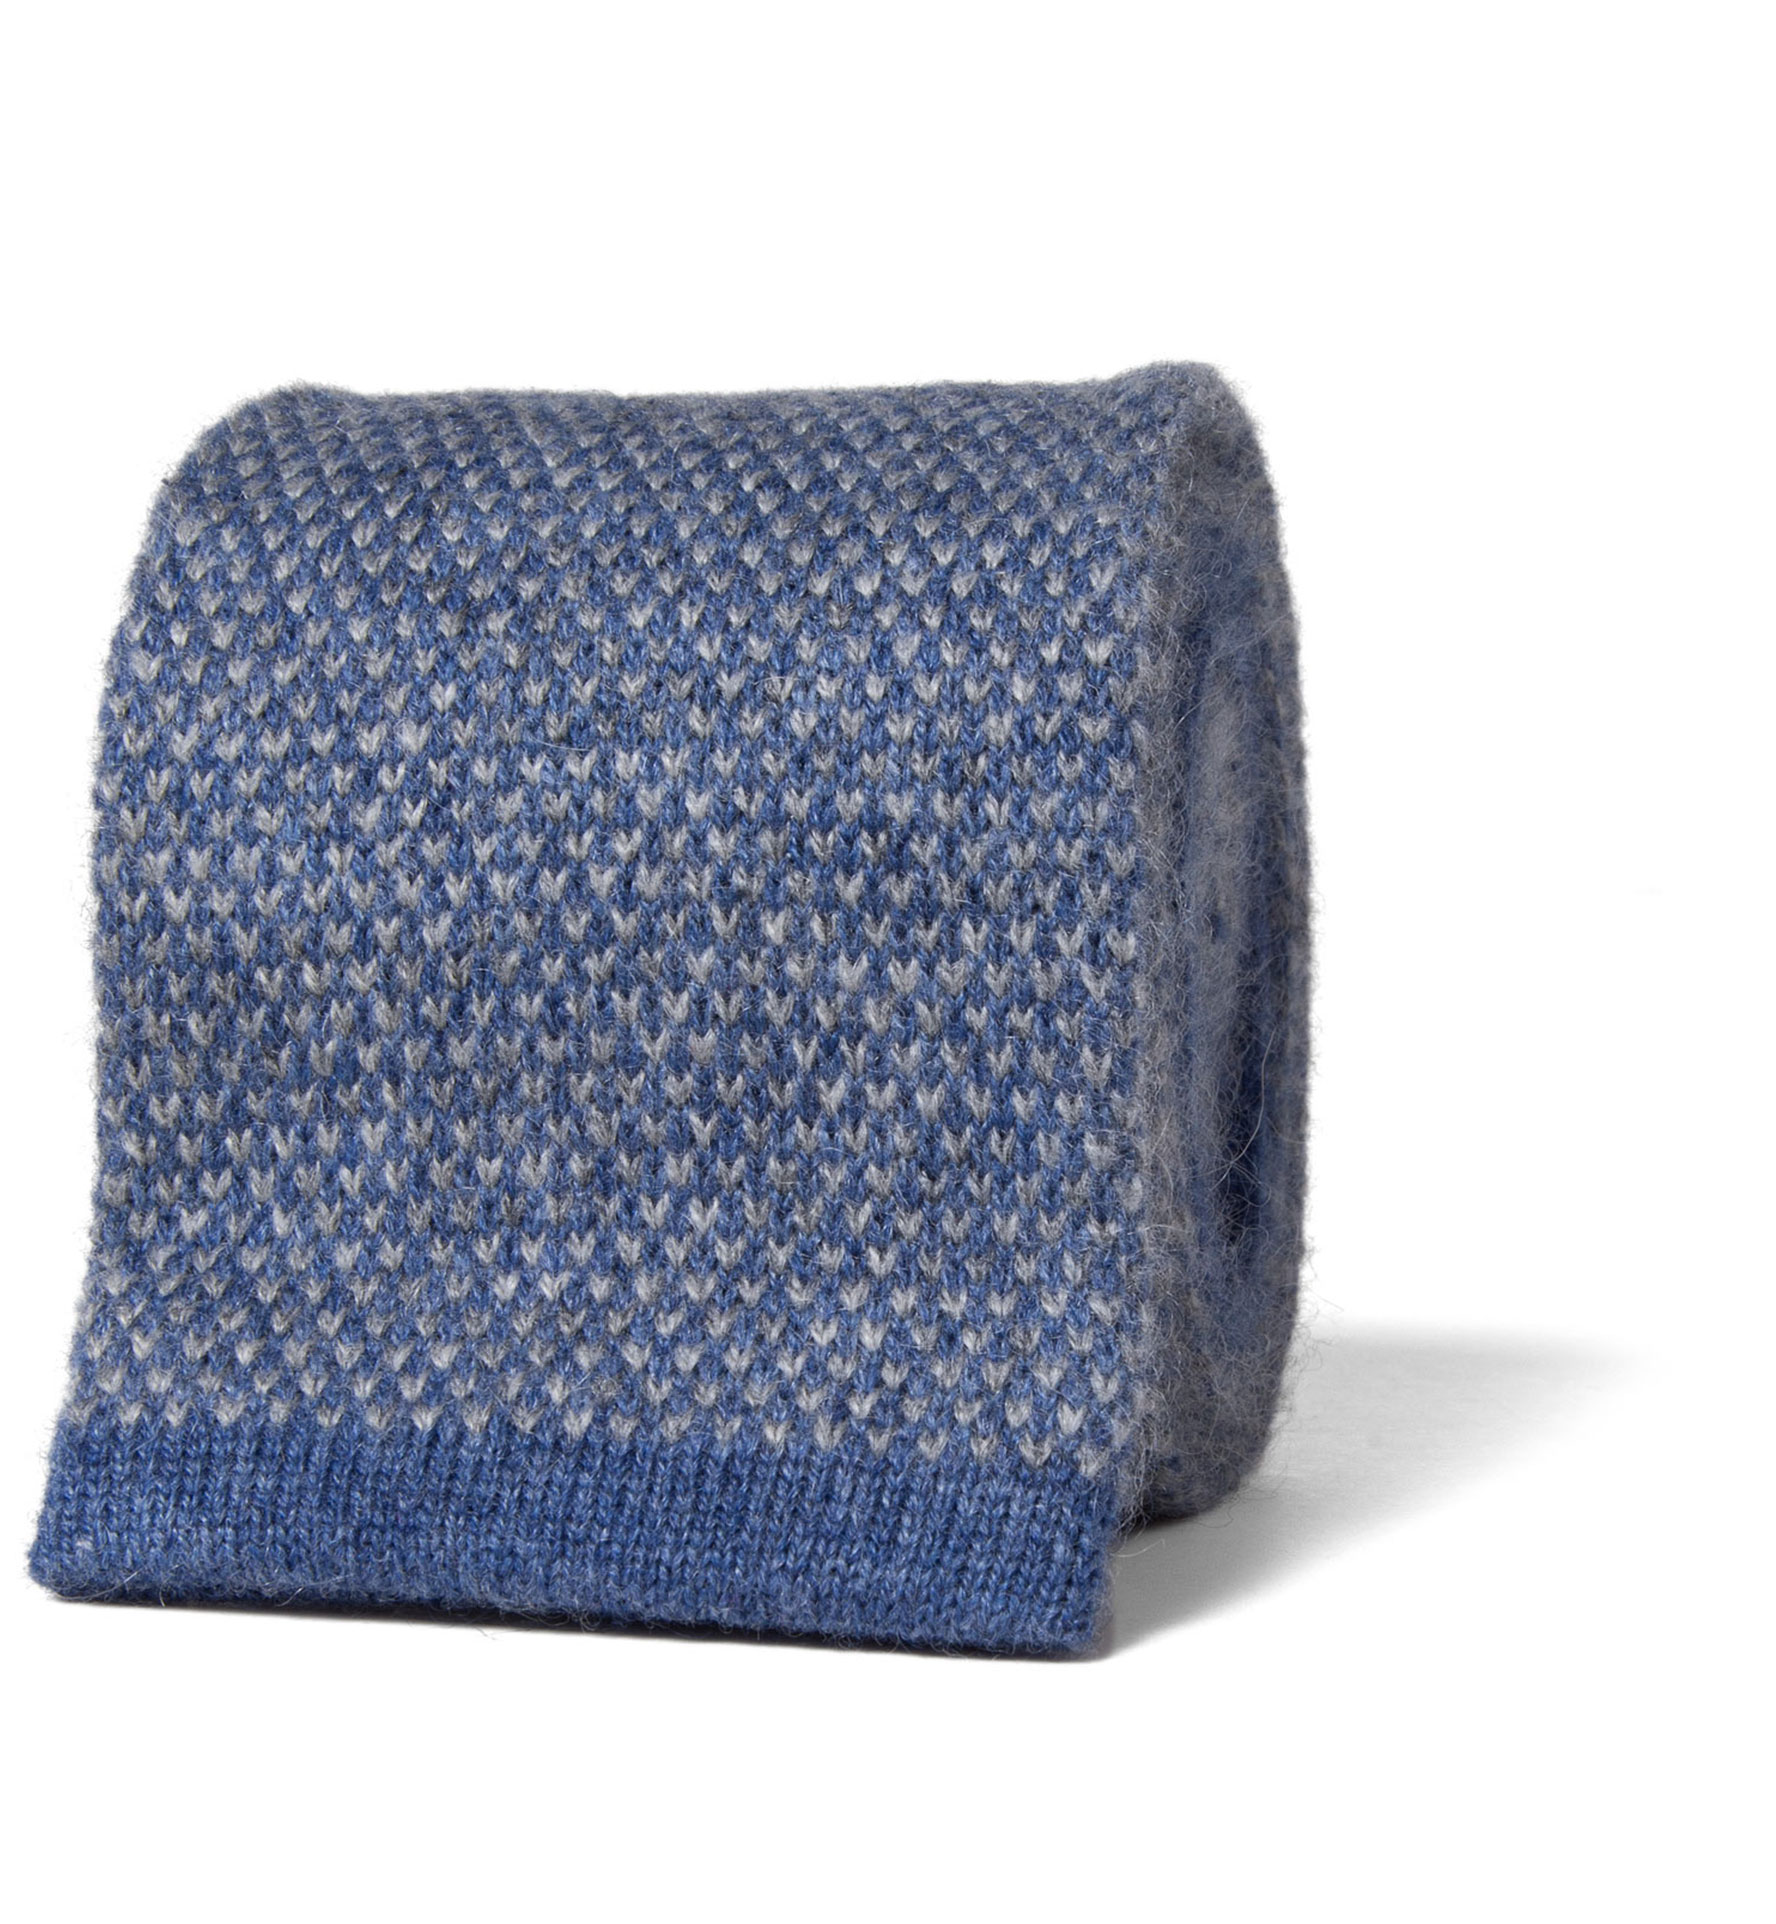 Zoom Image of Torino Blue Cashmere Knit Tie